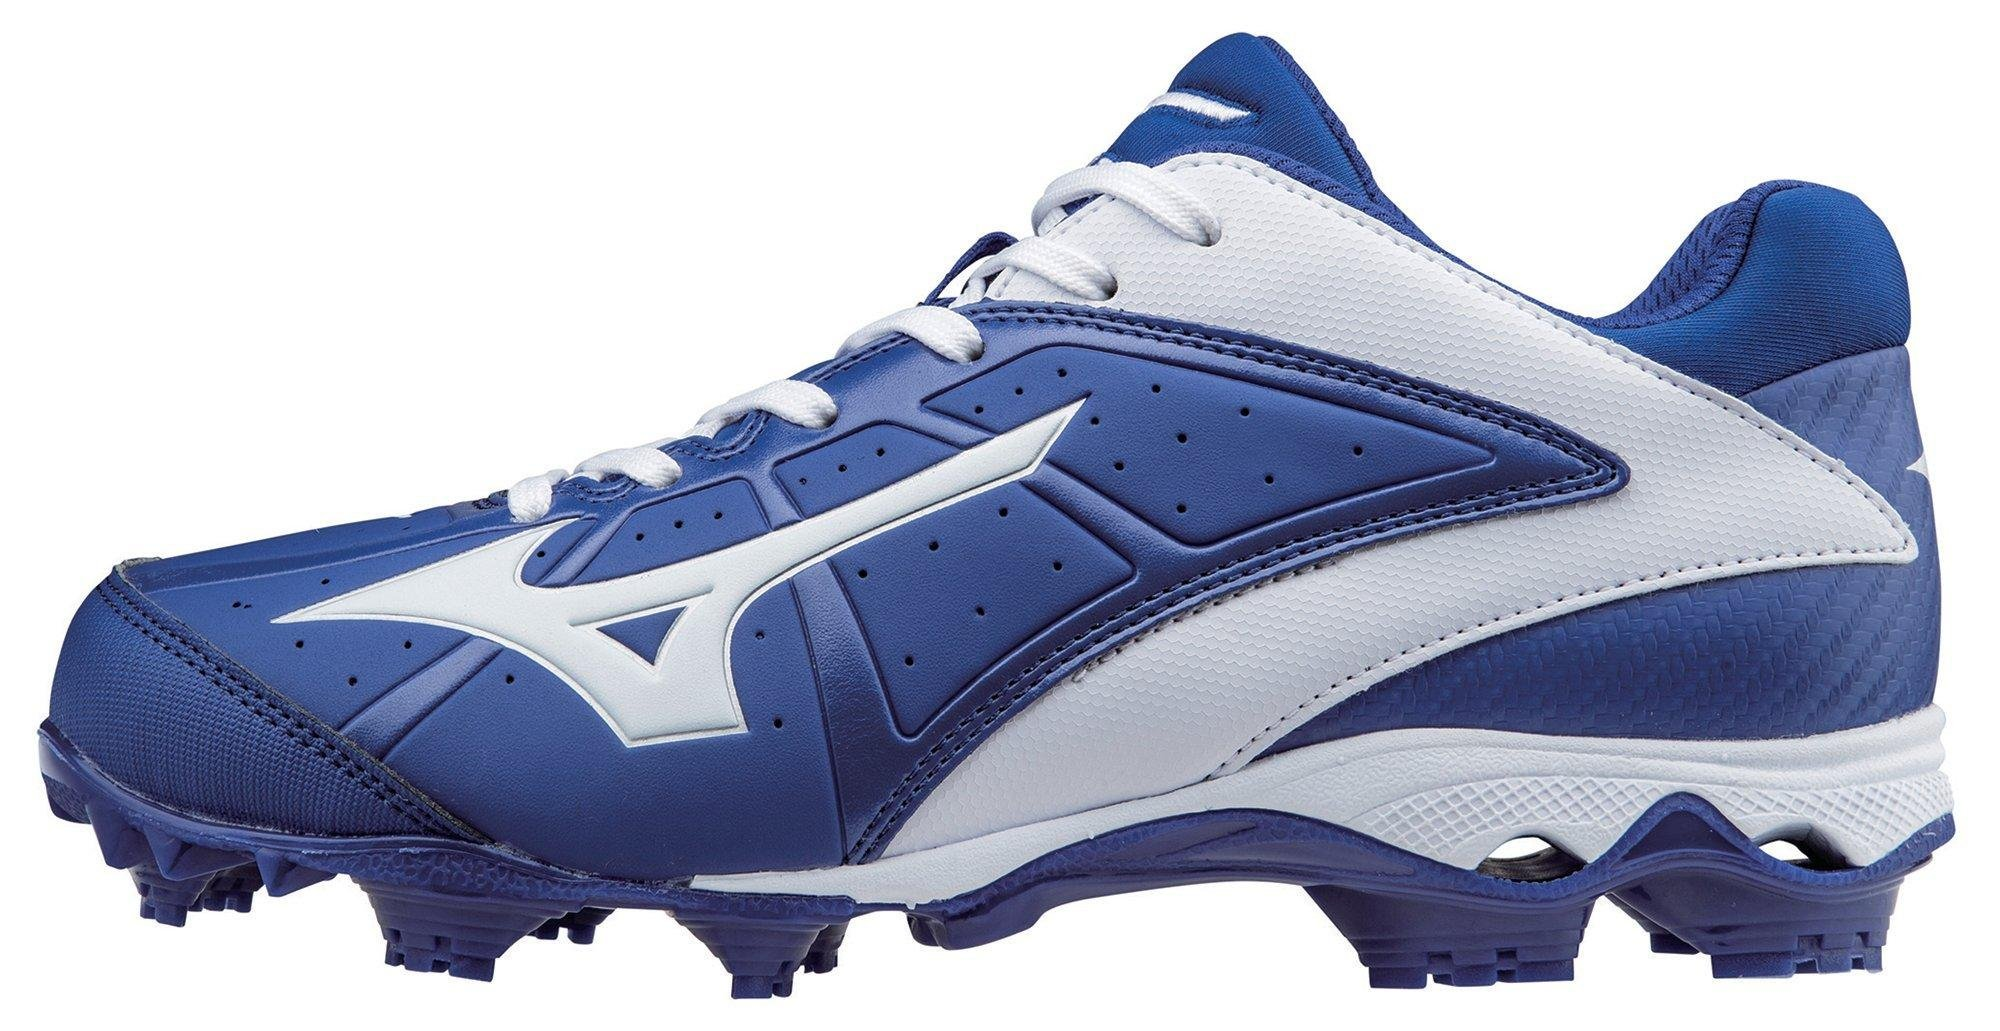 Mizuno Women's 9 Spike ADV Finch Elite 2 Fast Pitch Molded Softball Cleat, Royal/White, 9 M US